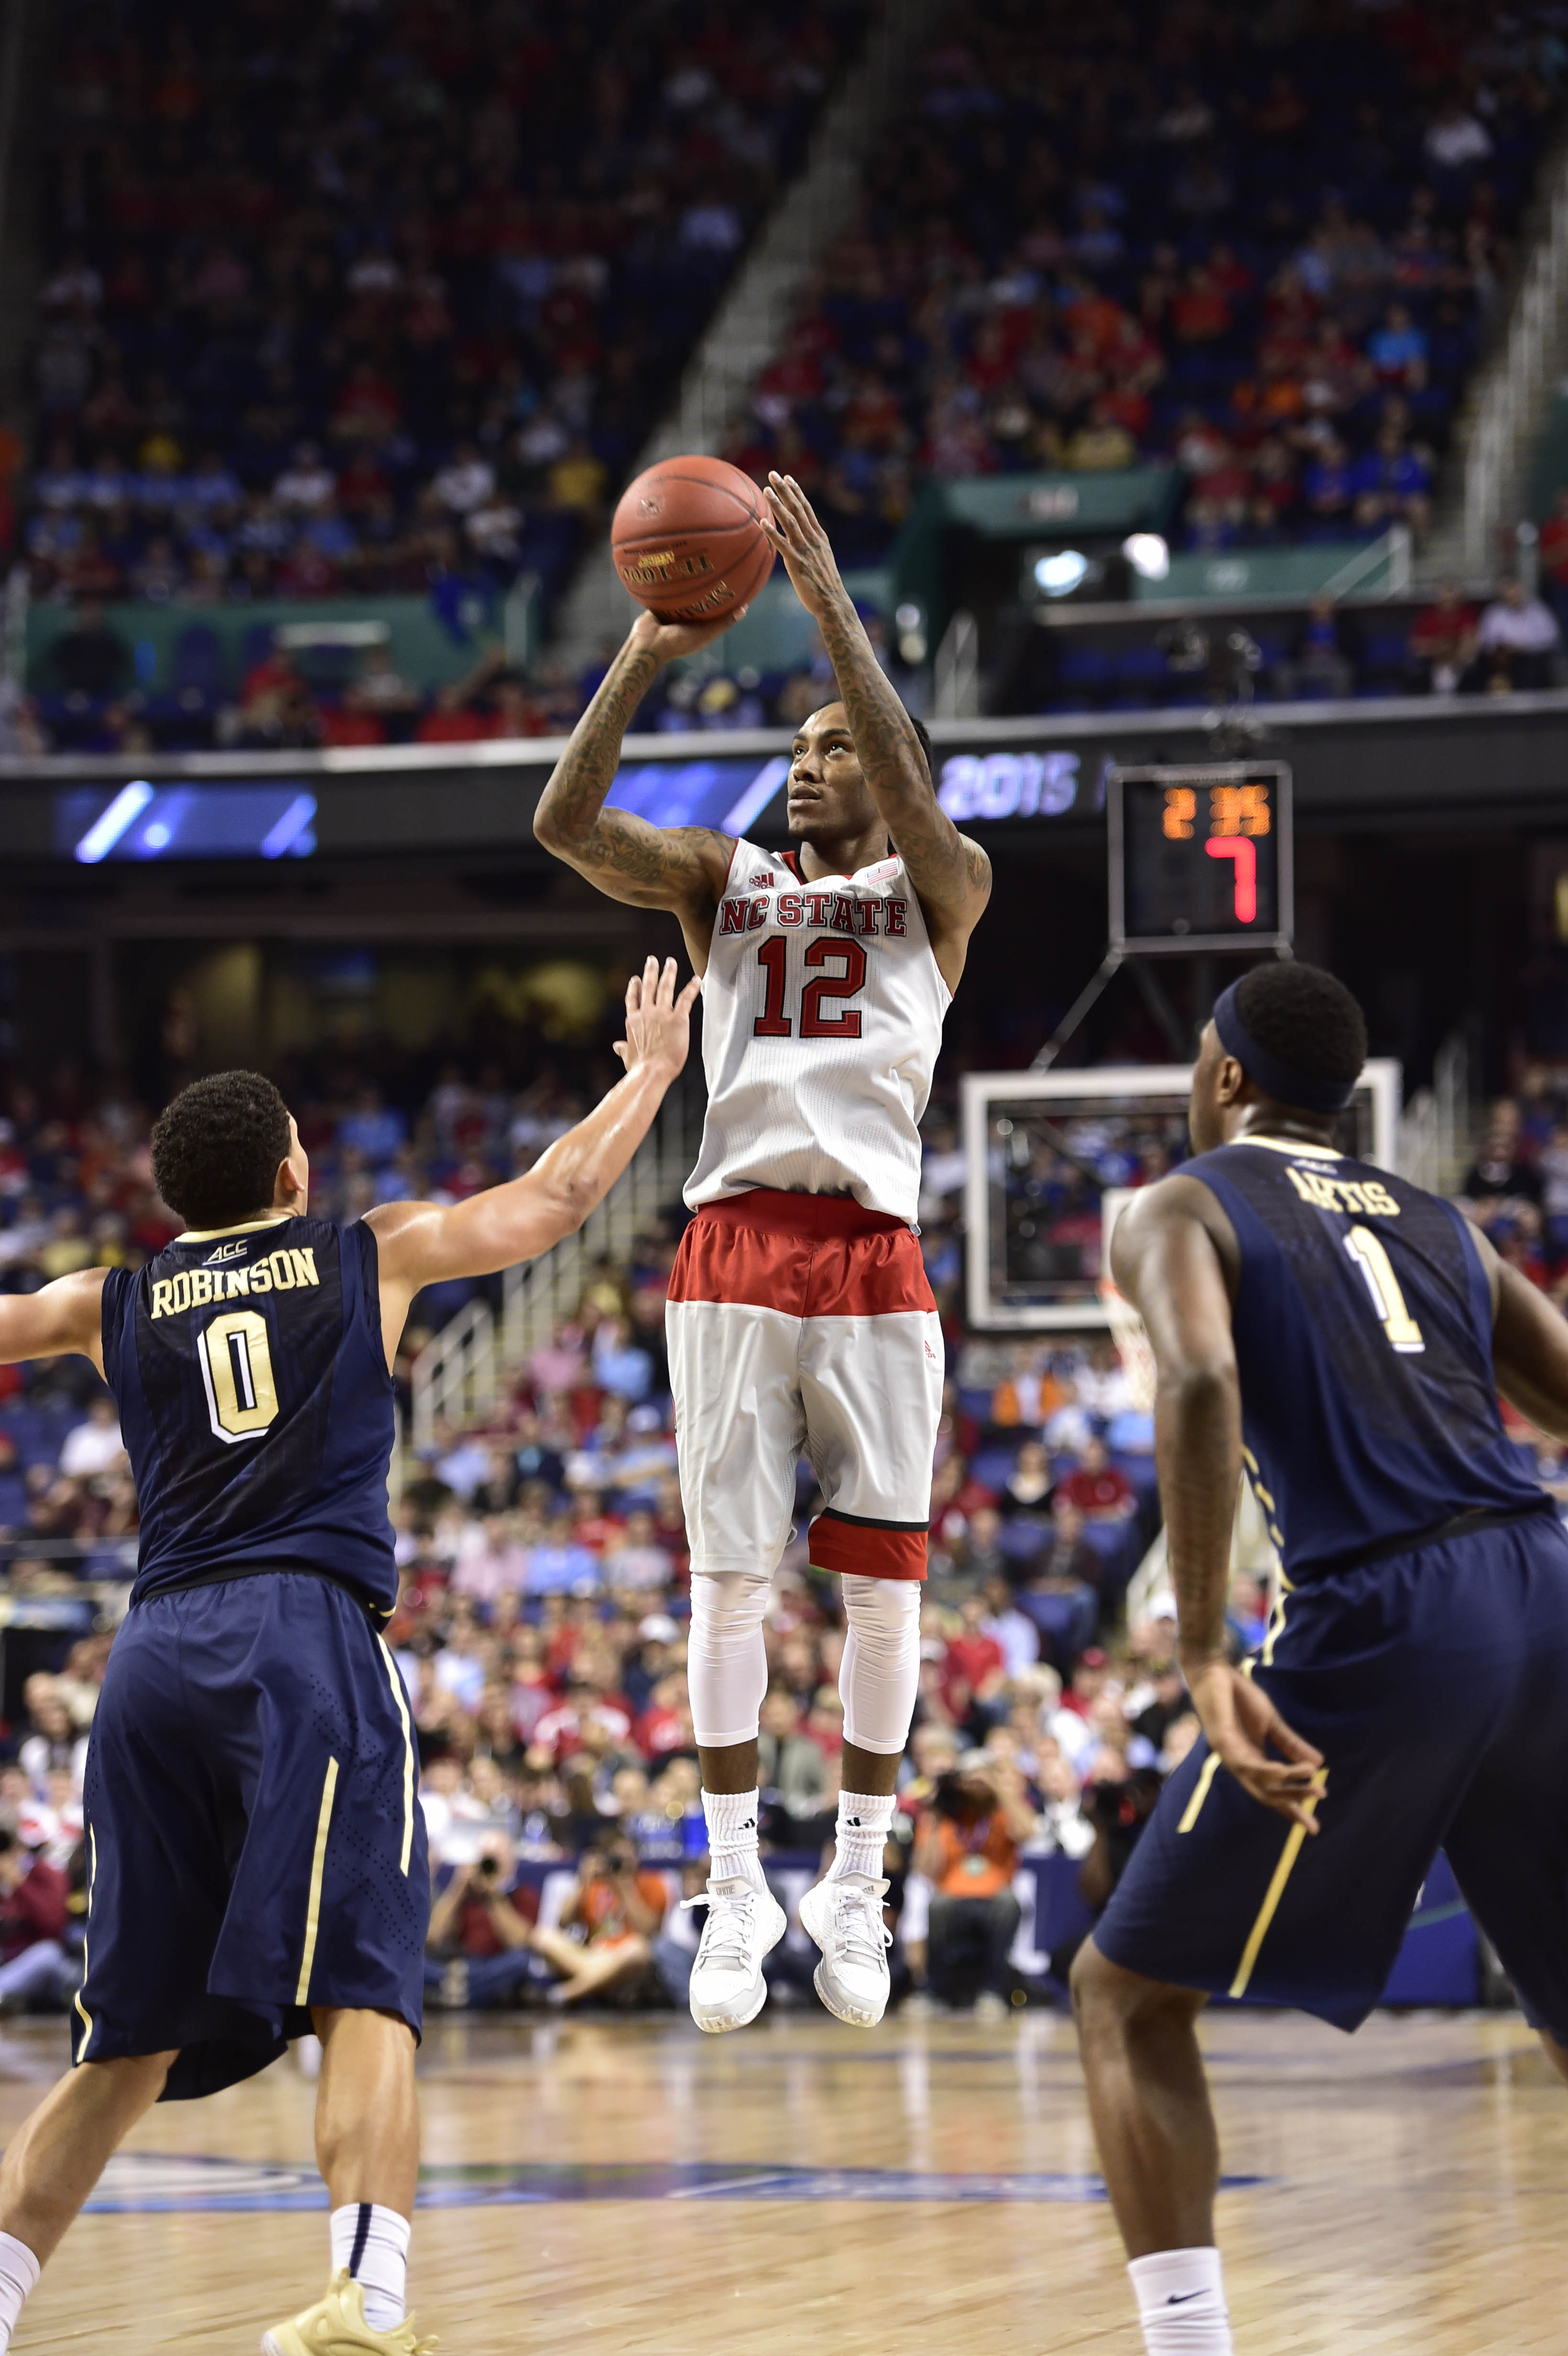 Cat Barber poured in 34 points in a Day 2 win against Pitt in the ACC Tournament